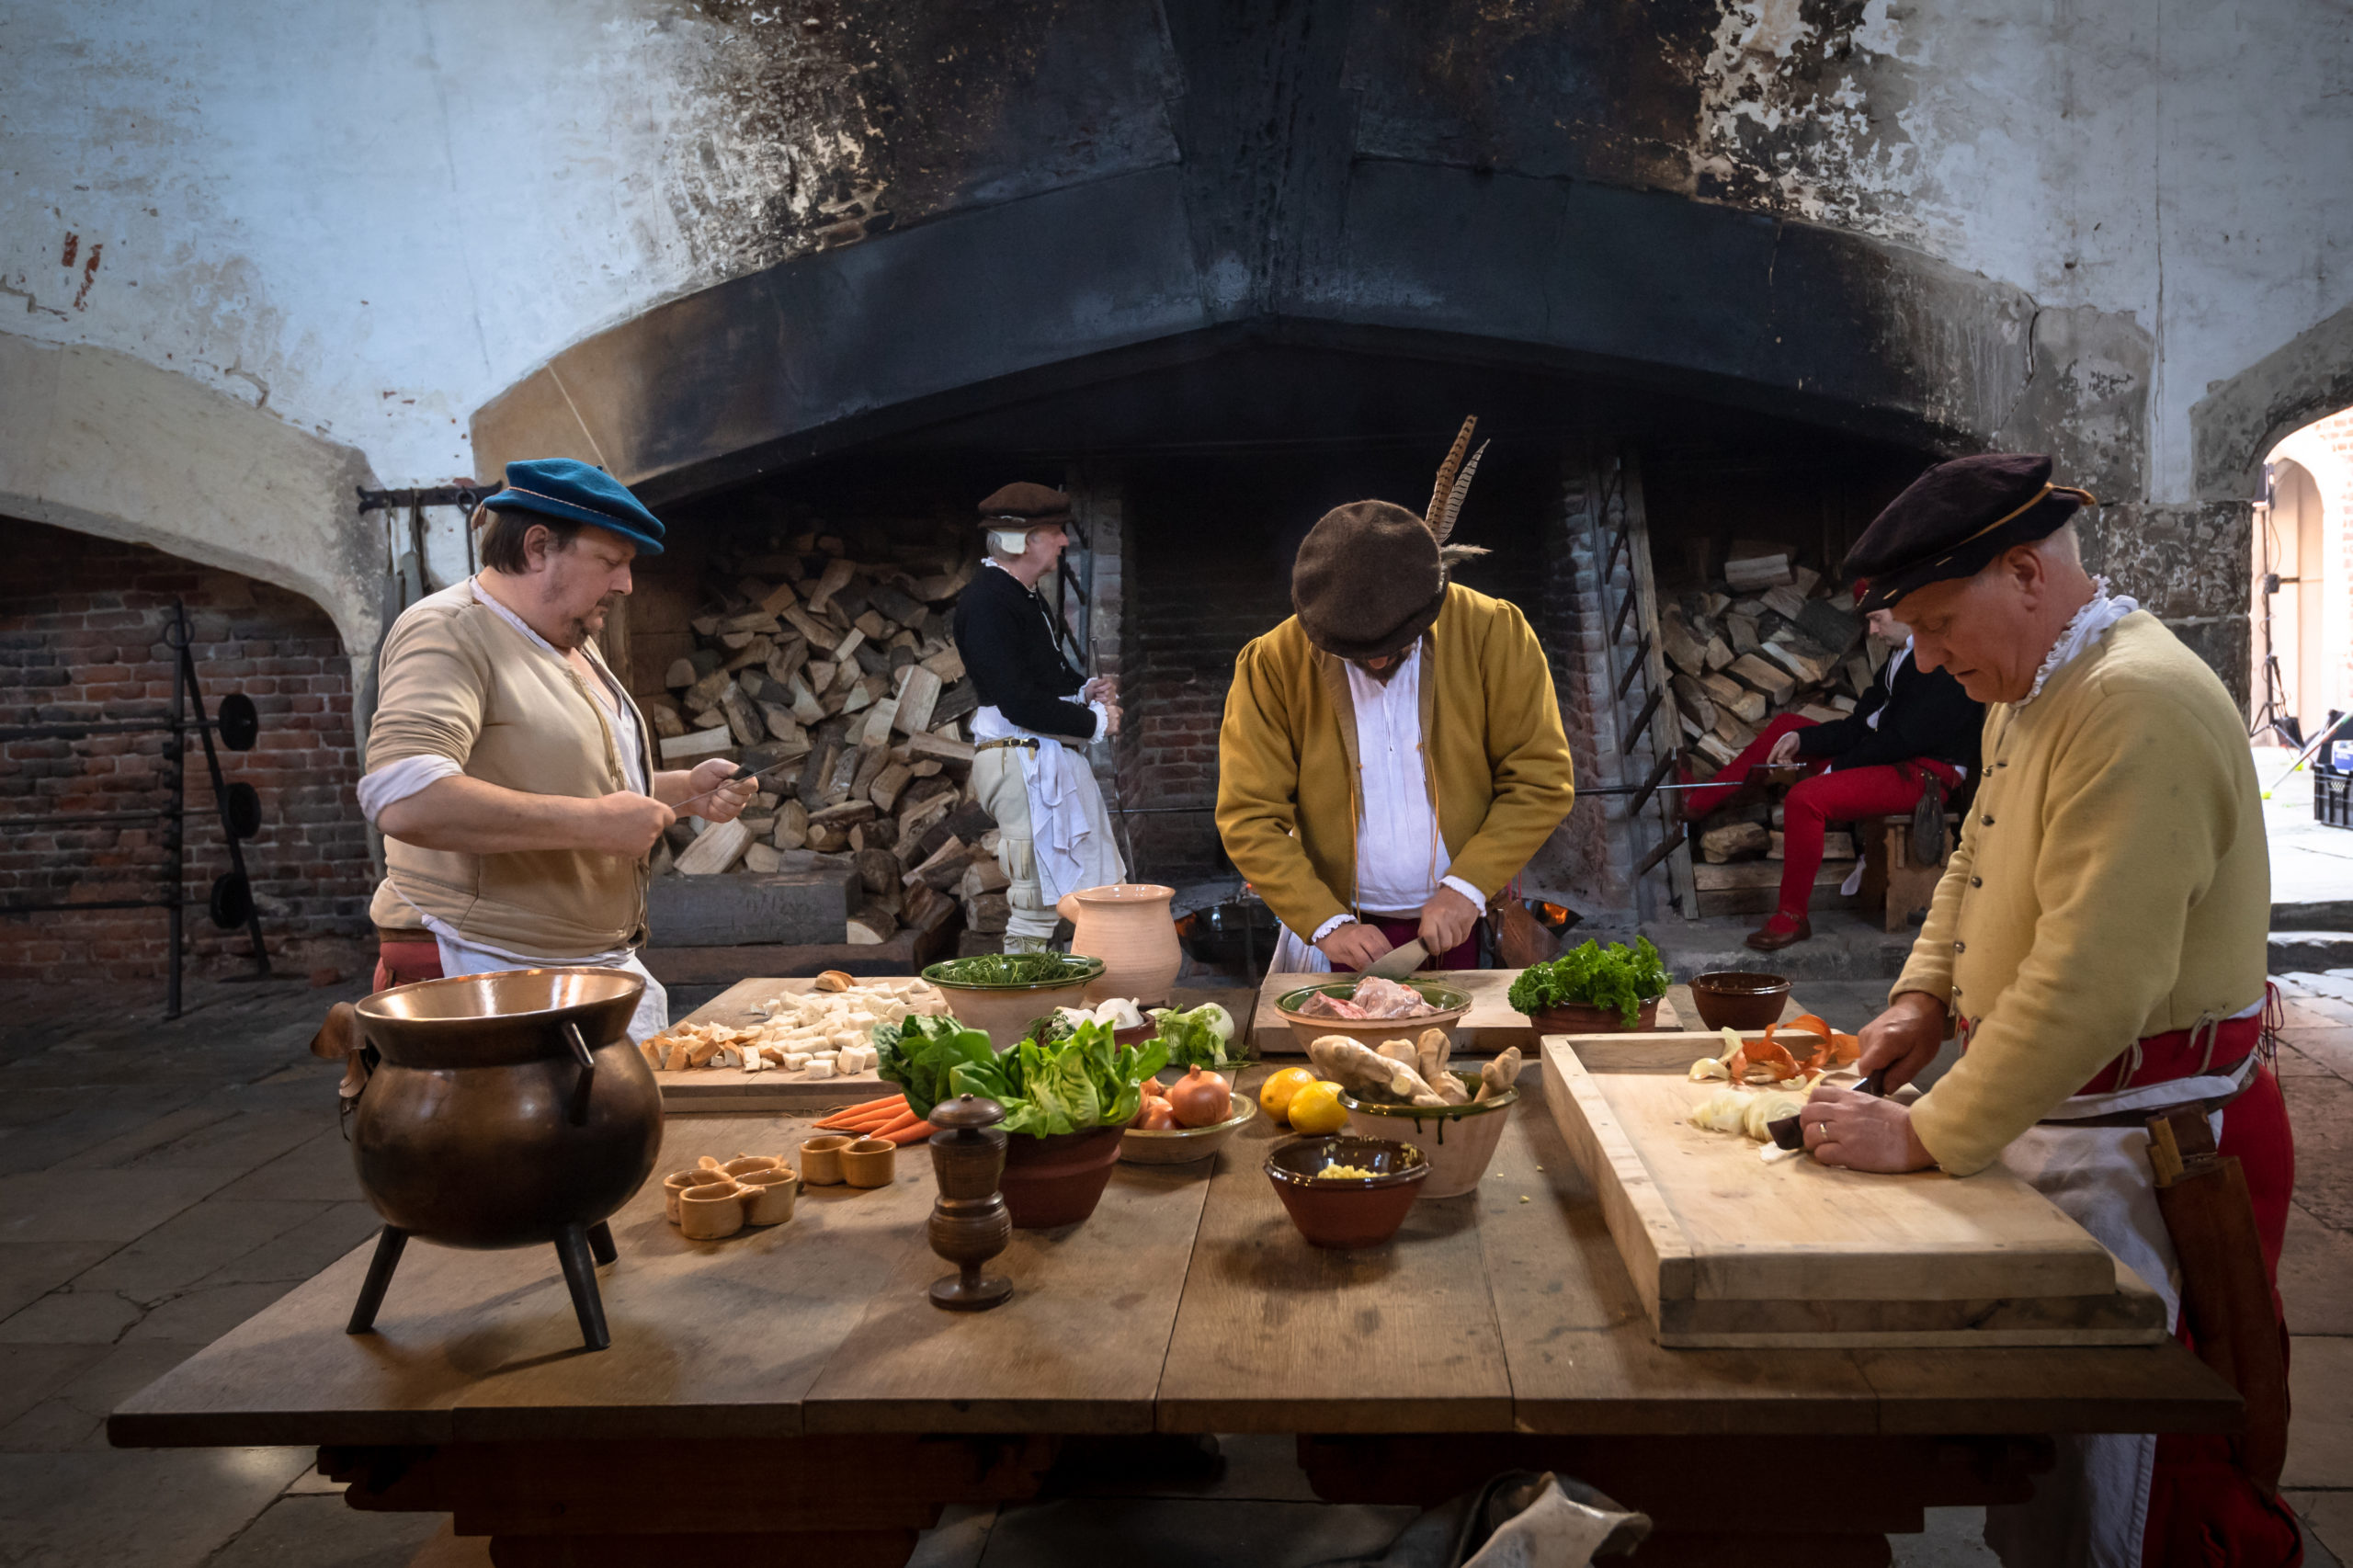 Enjoy A Royal UK Getaway at Oatlands Park Hotel: Visit nearby Hampton Court Palace for a great day out for all the family - Cooking in King Henry VIII's Kitchen!